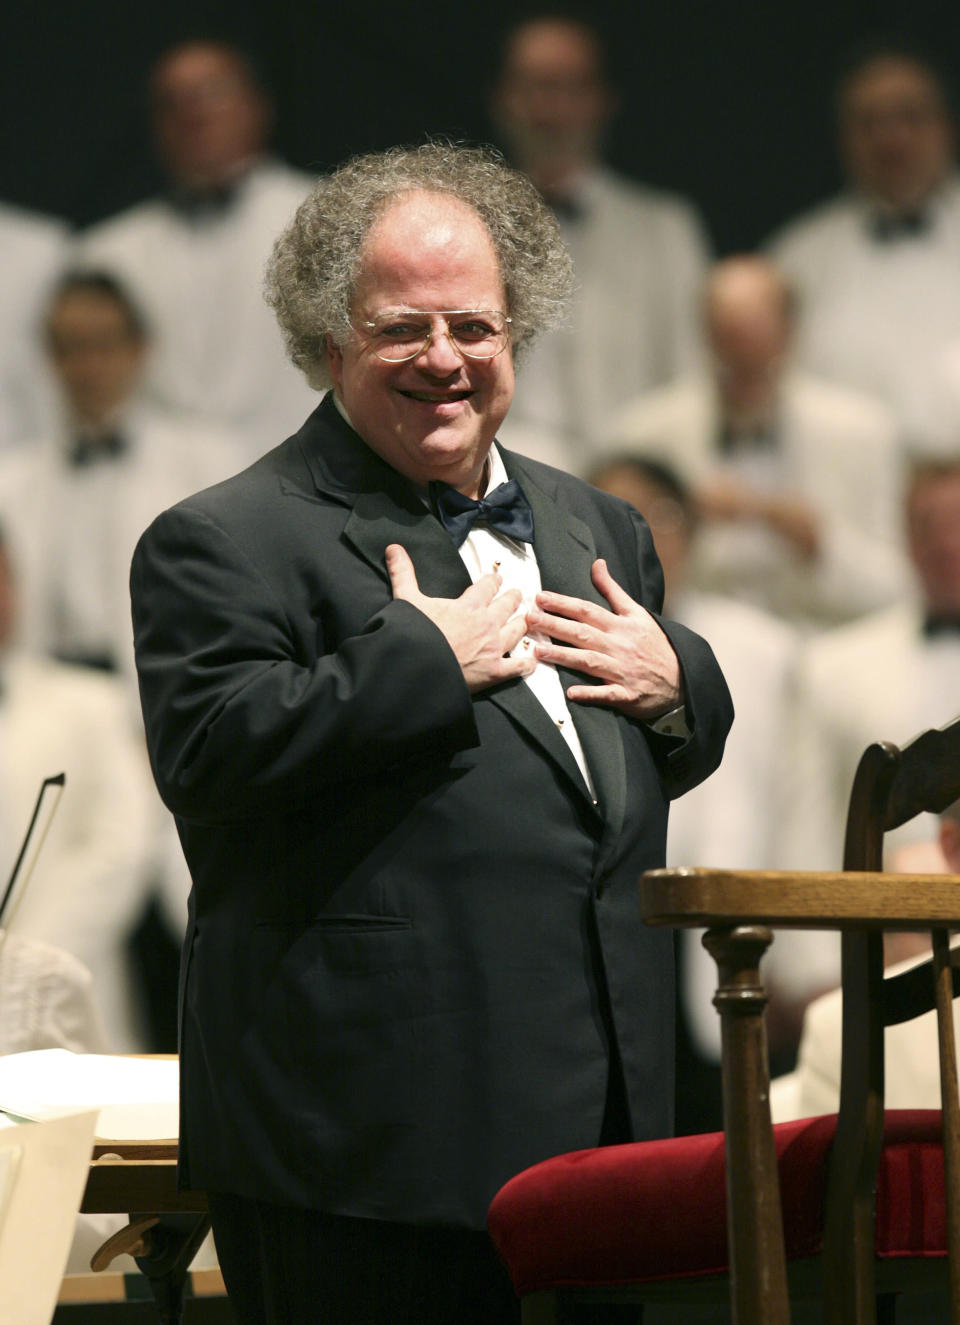 FILE - Boston Symphony Orchestra music director James Levine appears during a performance at Tanglewood in Lenox, Mass., on July 7, 2006. Levine, who ruled over the Metropolitan Opera for 4 1/2 decades before being eased out when his health declined and then fired for sexual improprieties, died March 9, 2021 in Palm Springs, Calif., of natural causes, his physician of 17 years, Dr. Len Horovitz, said Wednesday, March 17. He was 77. (AP Photo/Michael Dwyer, File)